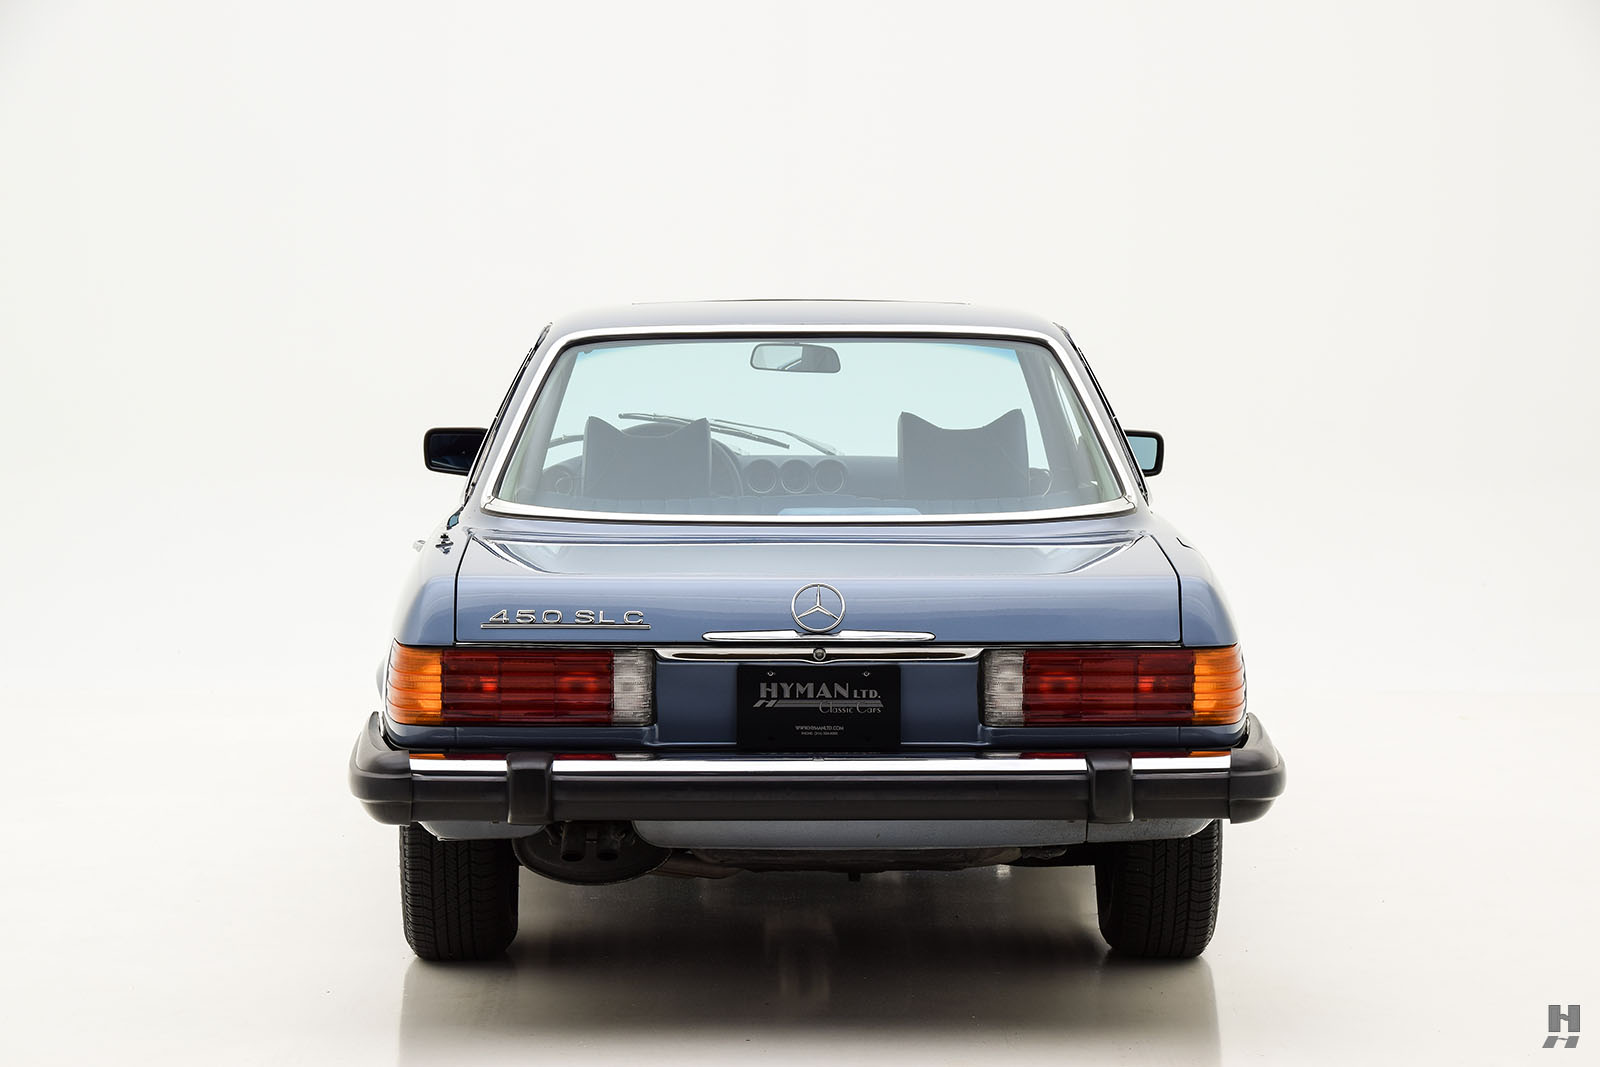 1979 mercedes benz 450slc coupe for sale buy classic car for Buy old mercedes benz